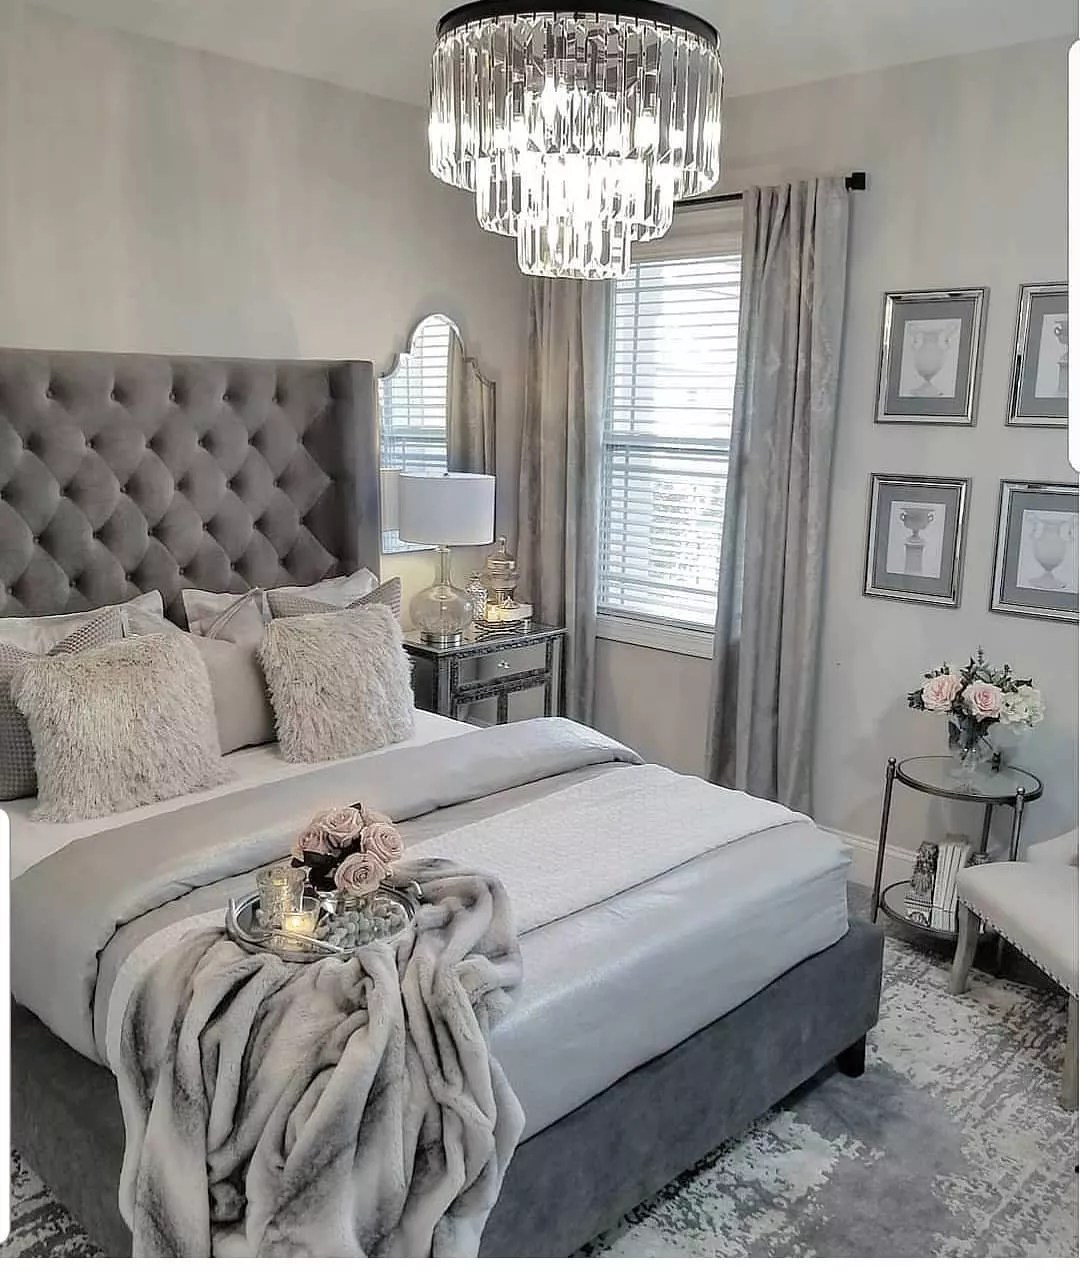 Room with varying shades of gray; the walls are pearl gray. Photo by Instagram user @lovefordesigns.